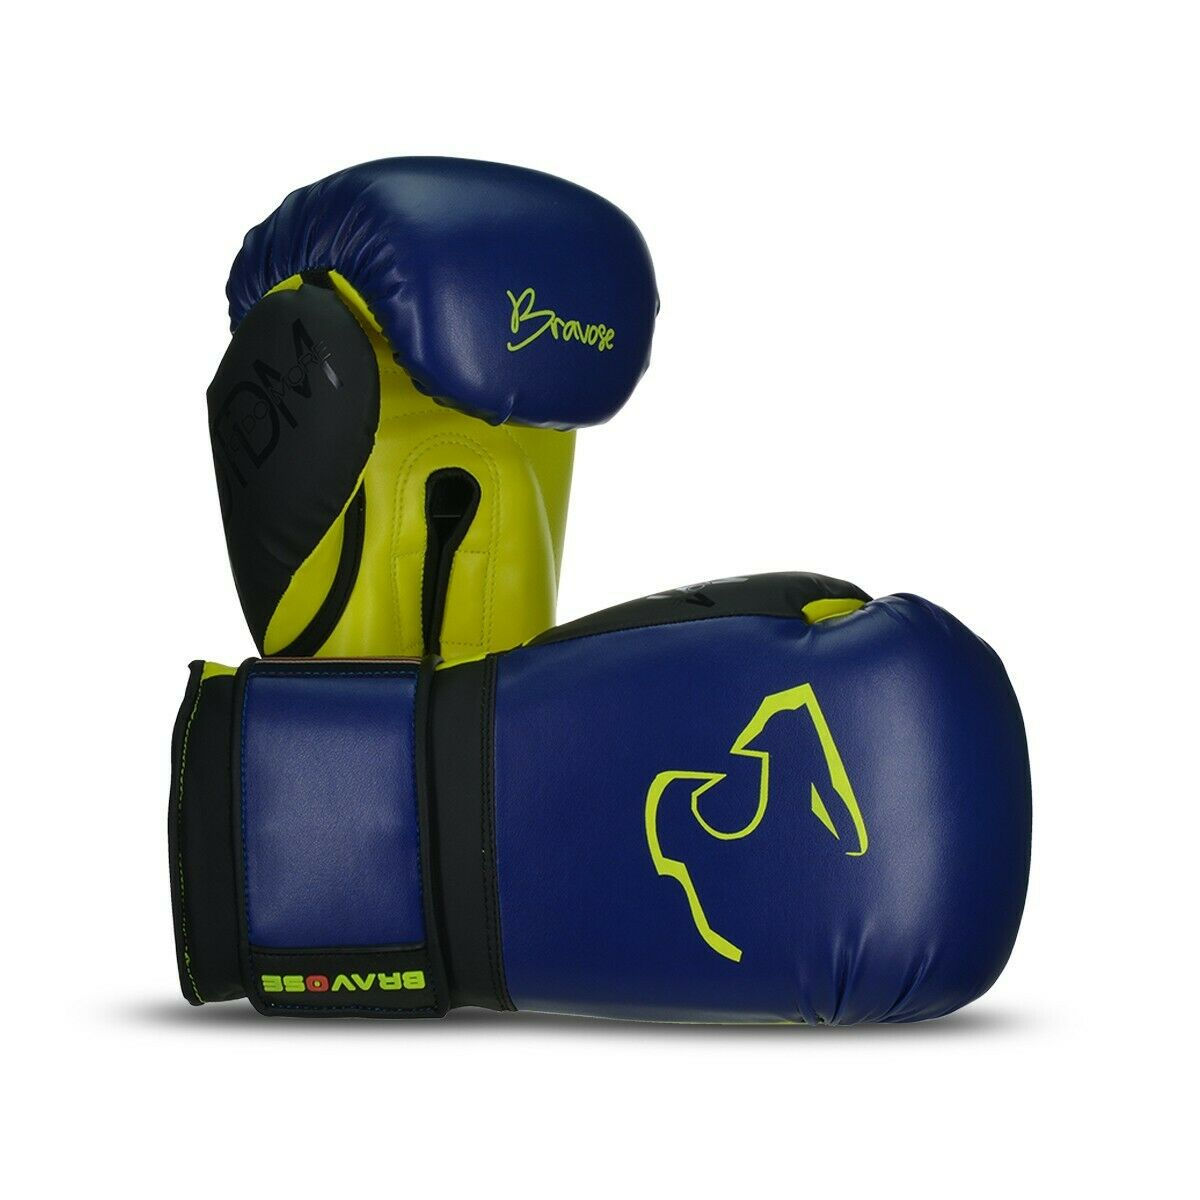 Bravose Nemesis Premium Quality Boxing Gloves for Bag and Sparring